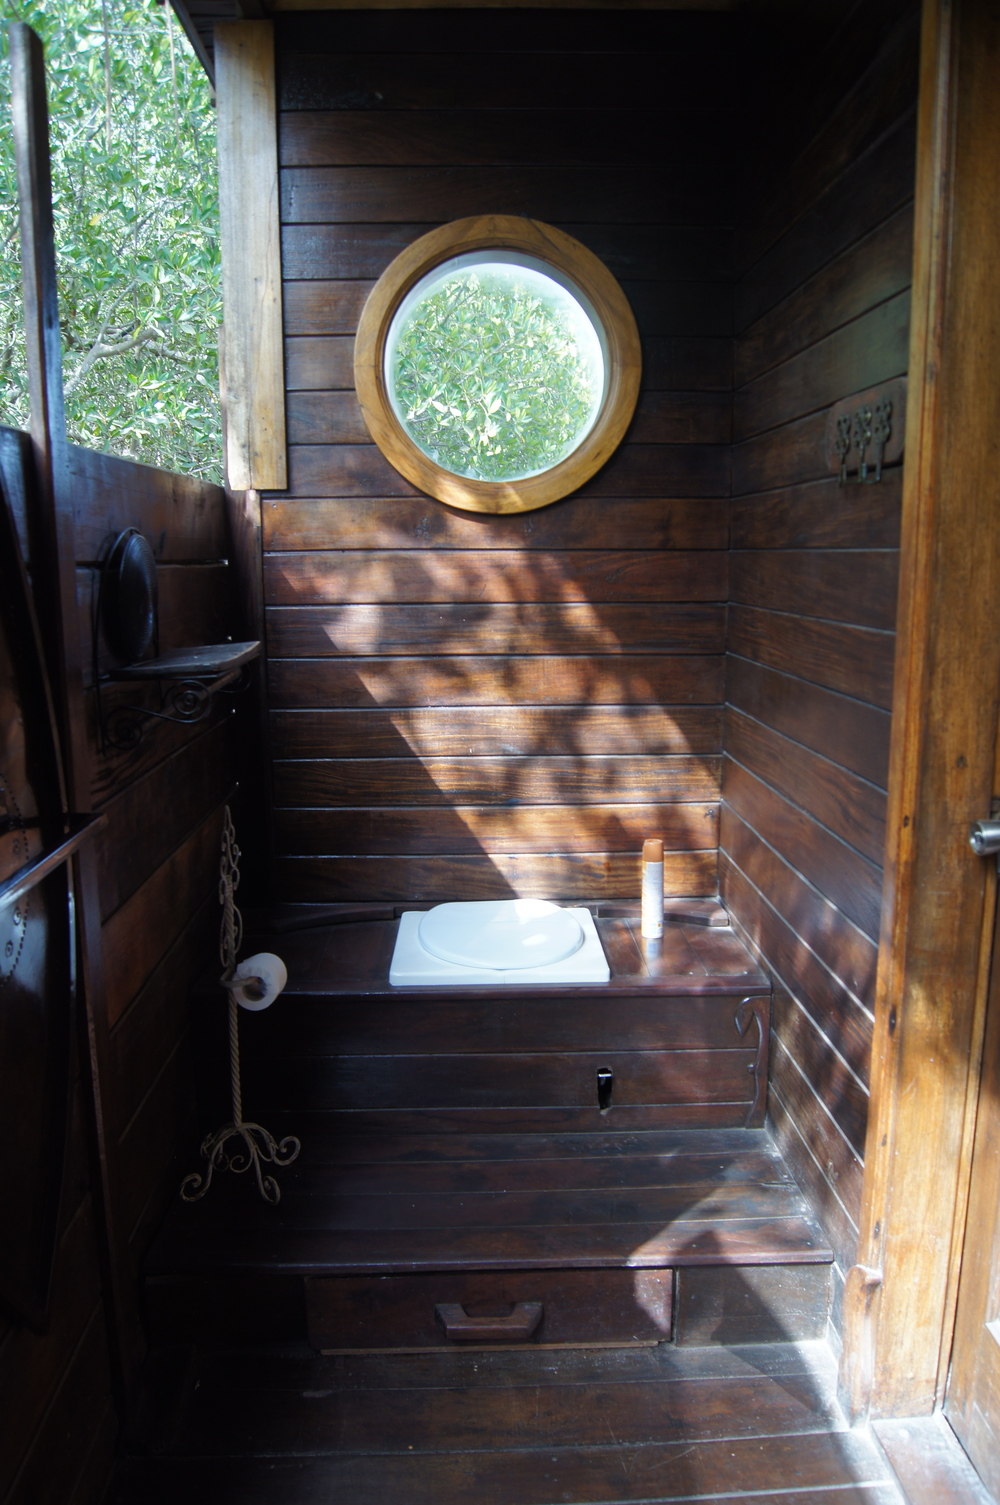 Al fresco bathroom